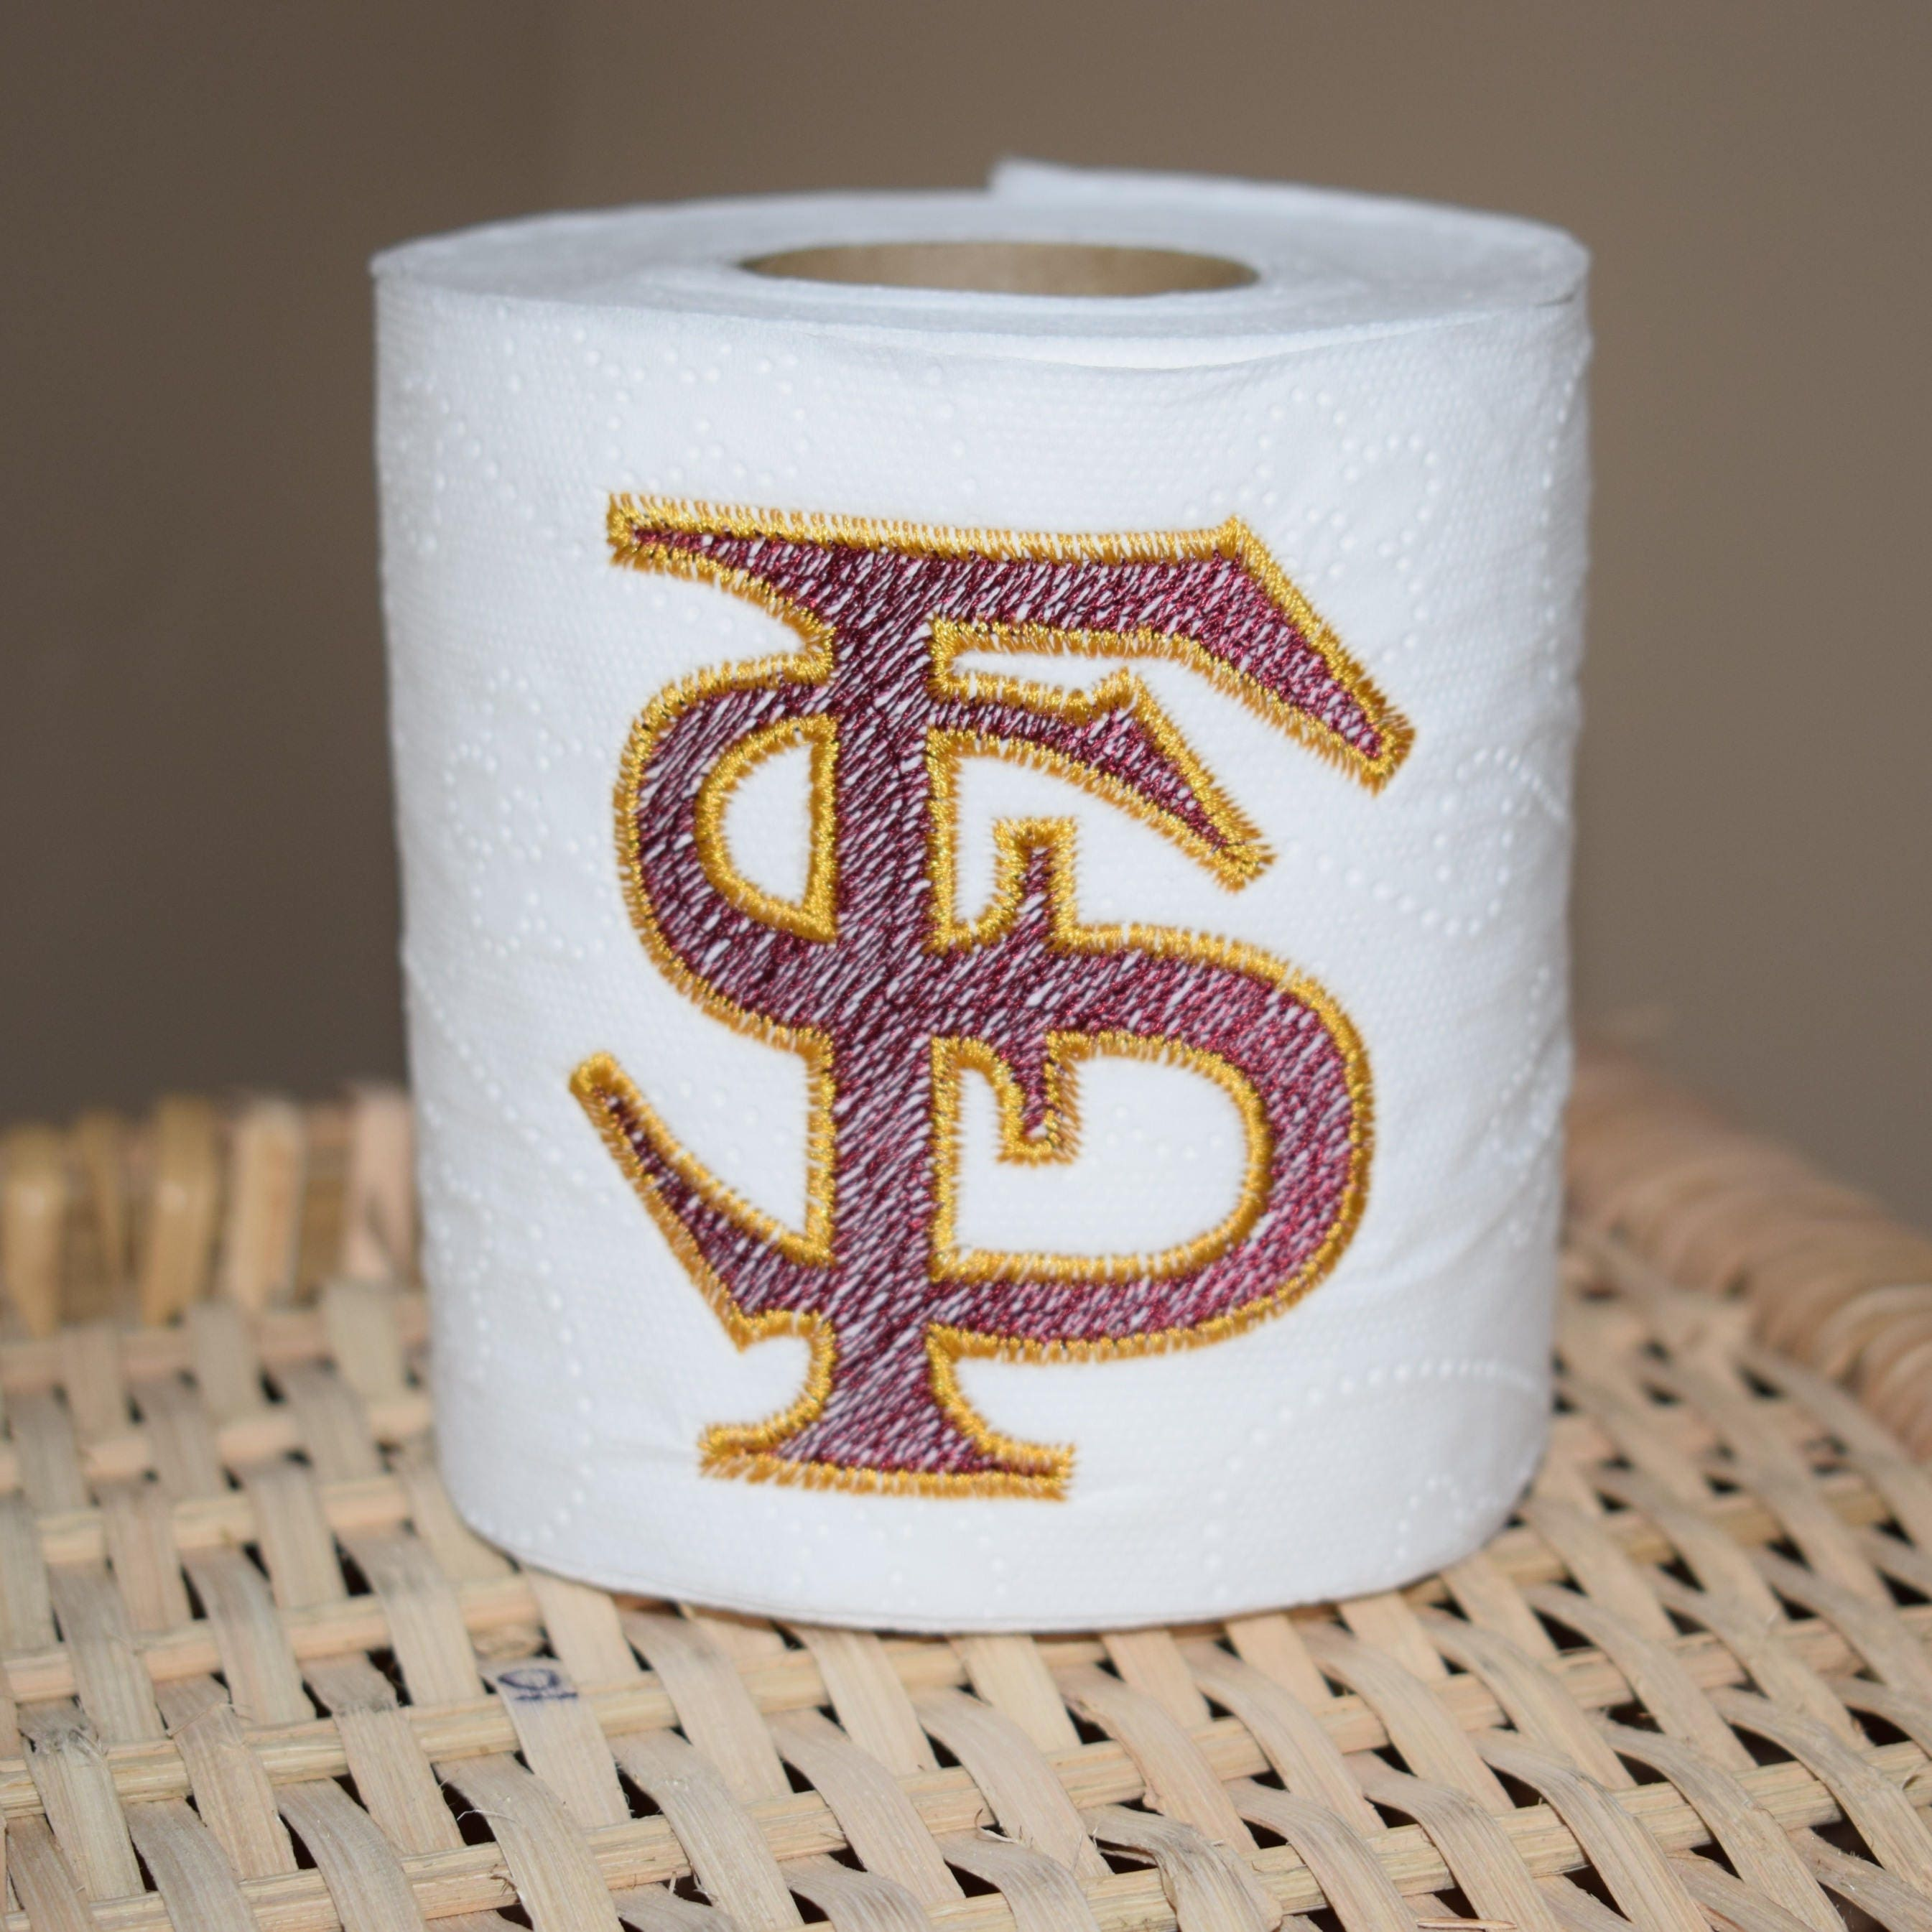 Embroidery designs for toilet paper - This Is A Digital File